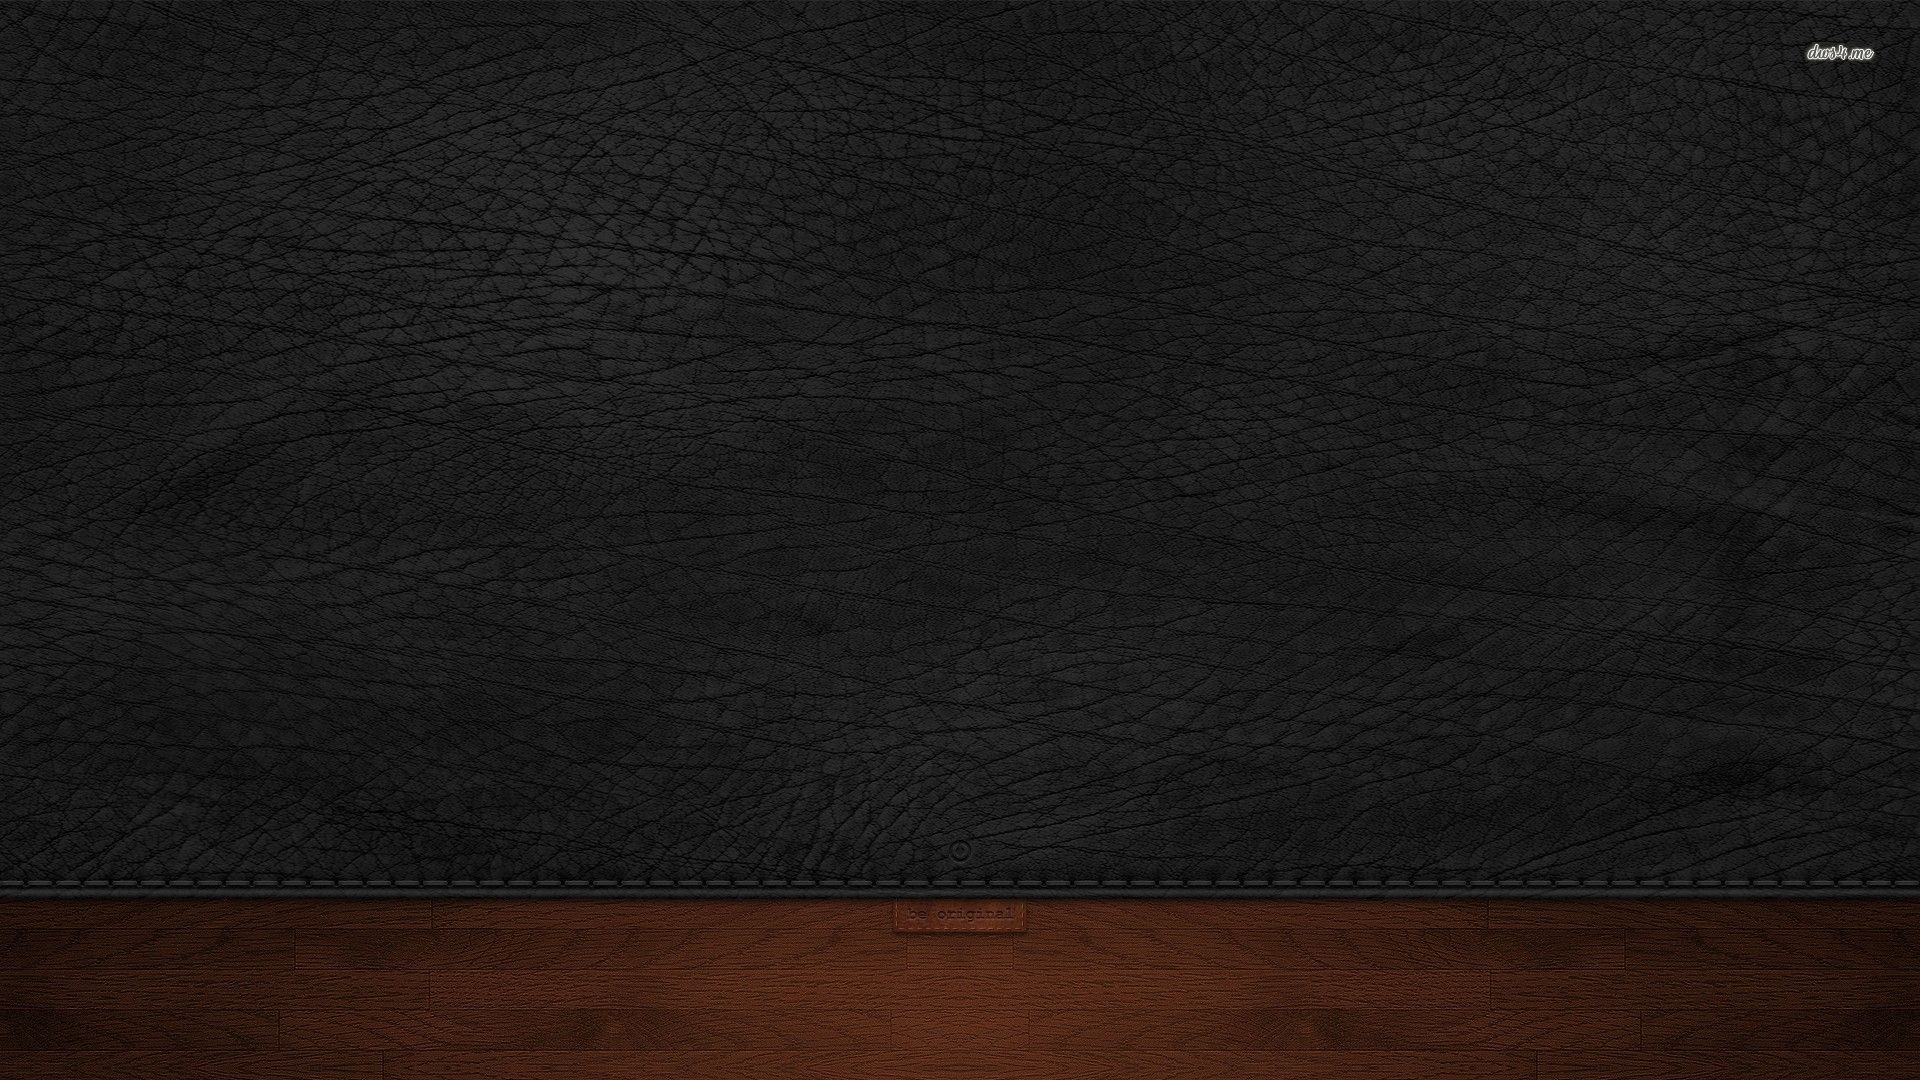 1920x1080 Be original black leather wallpaper - Abstract wallpapers ...